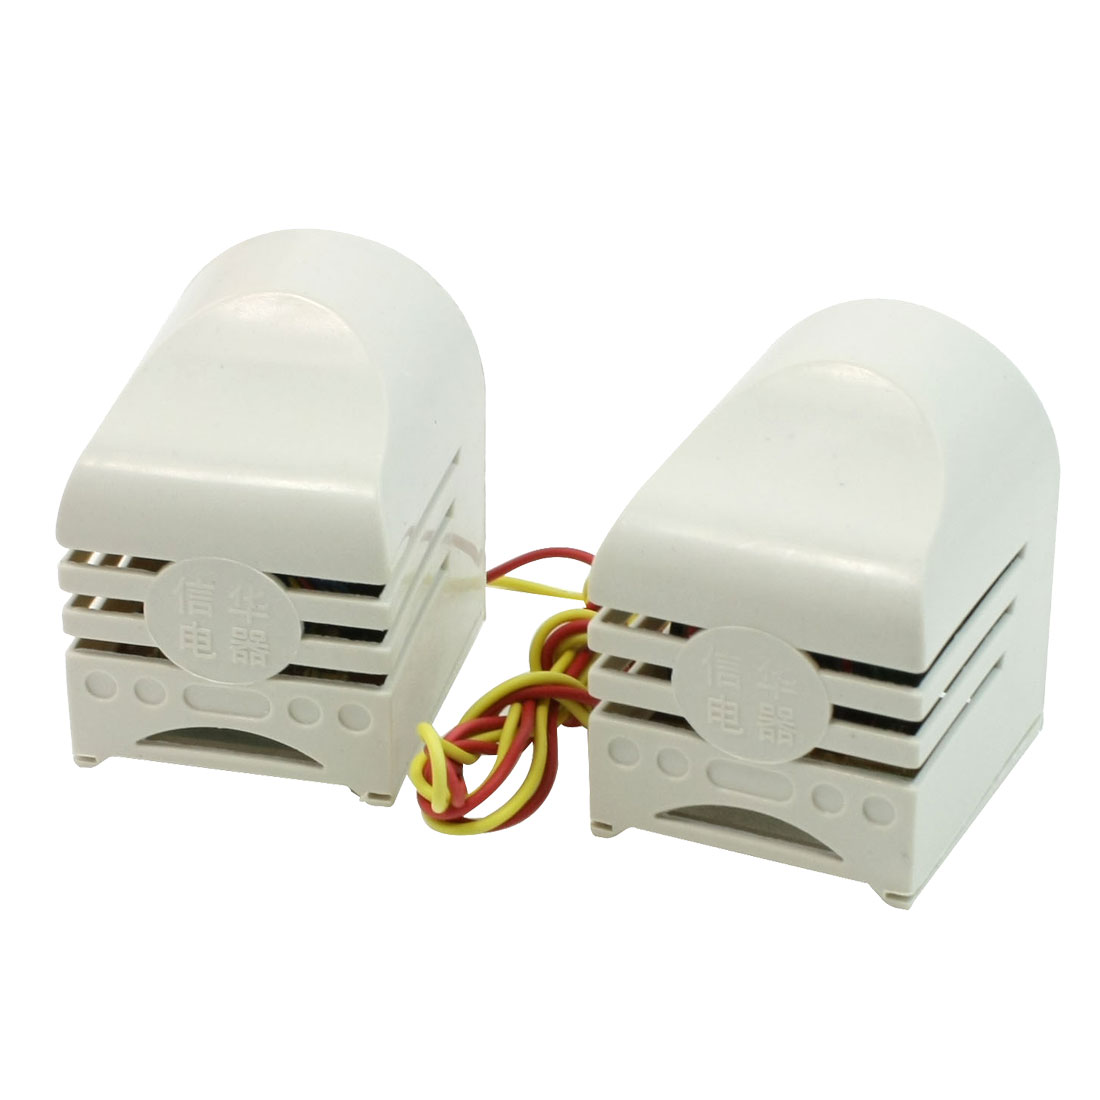 AC 220V 0.09A 20W Fluorescent Lamp Holder Brackets Pair for T10 T12 Light Tube